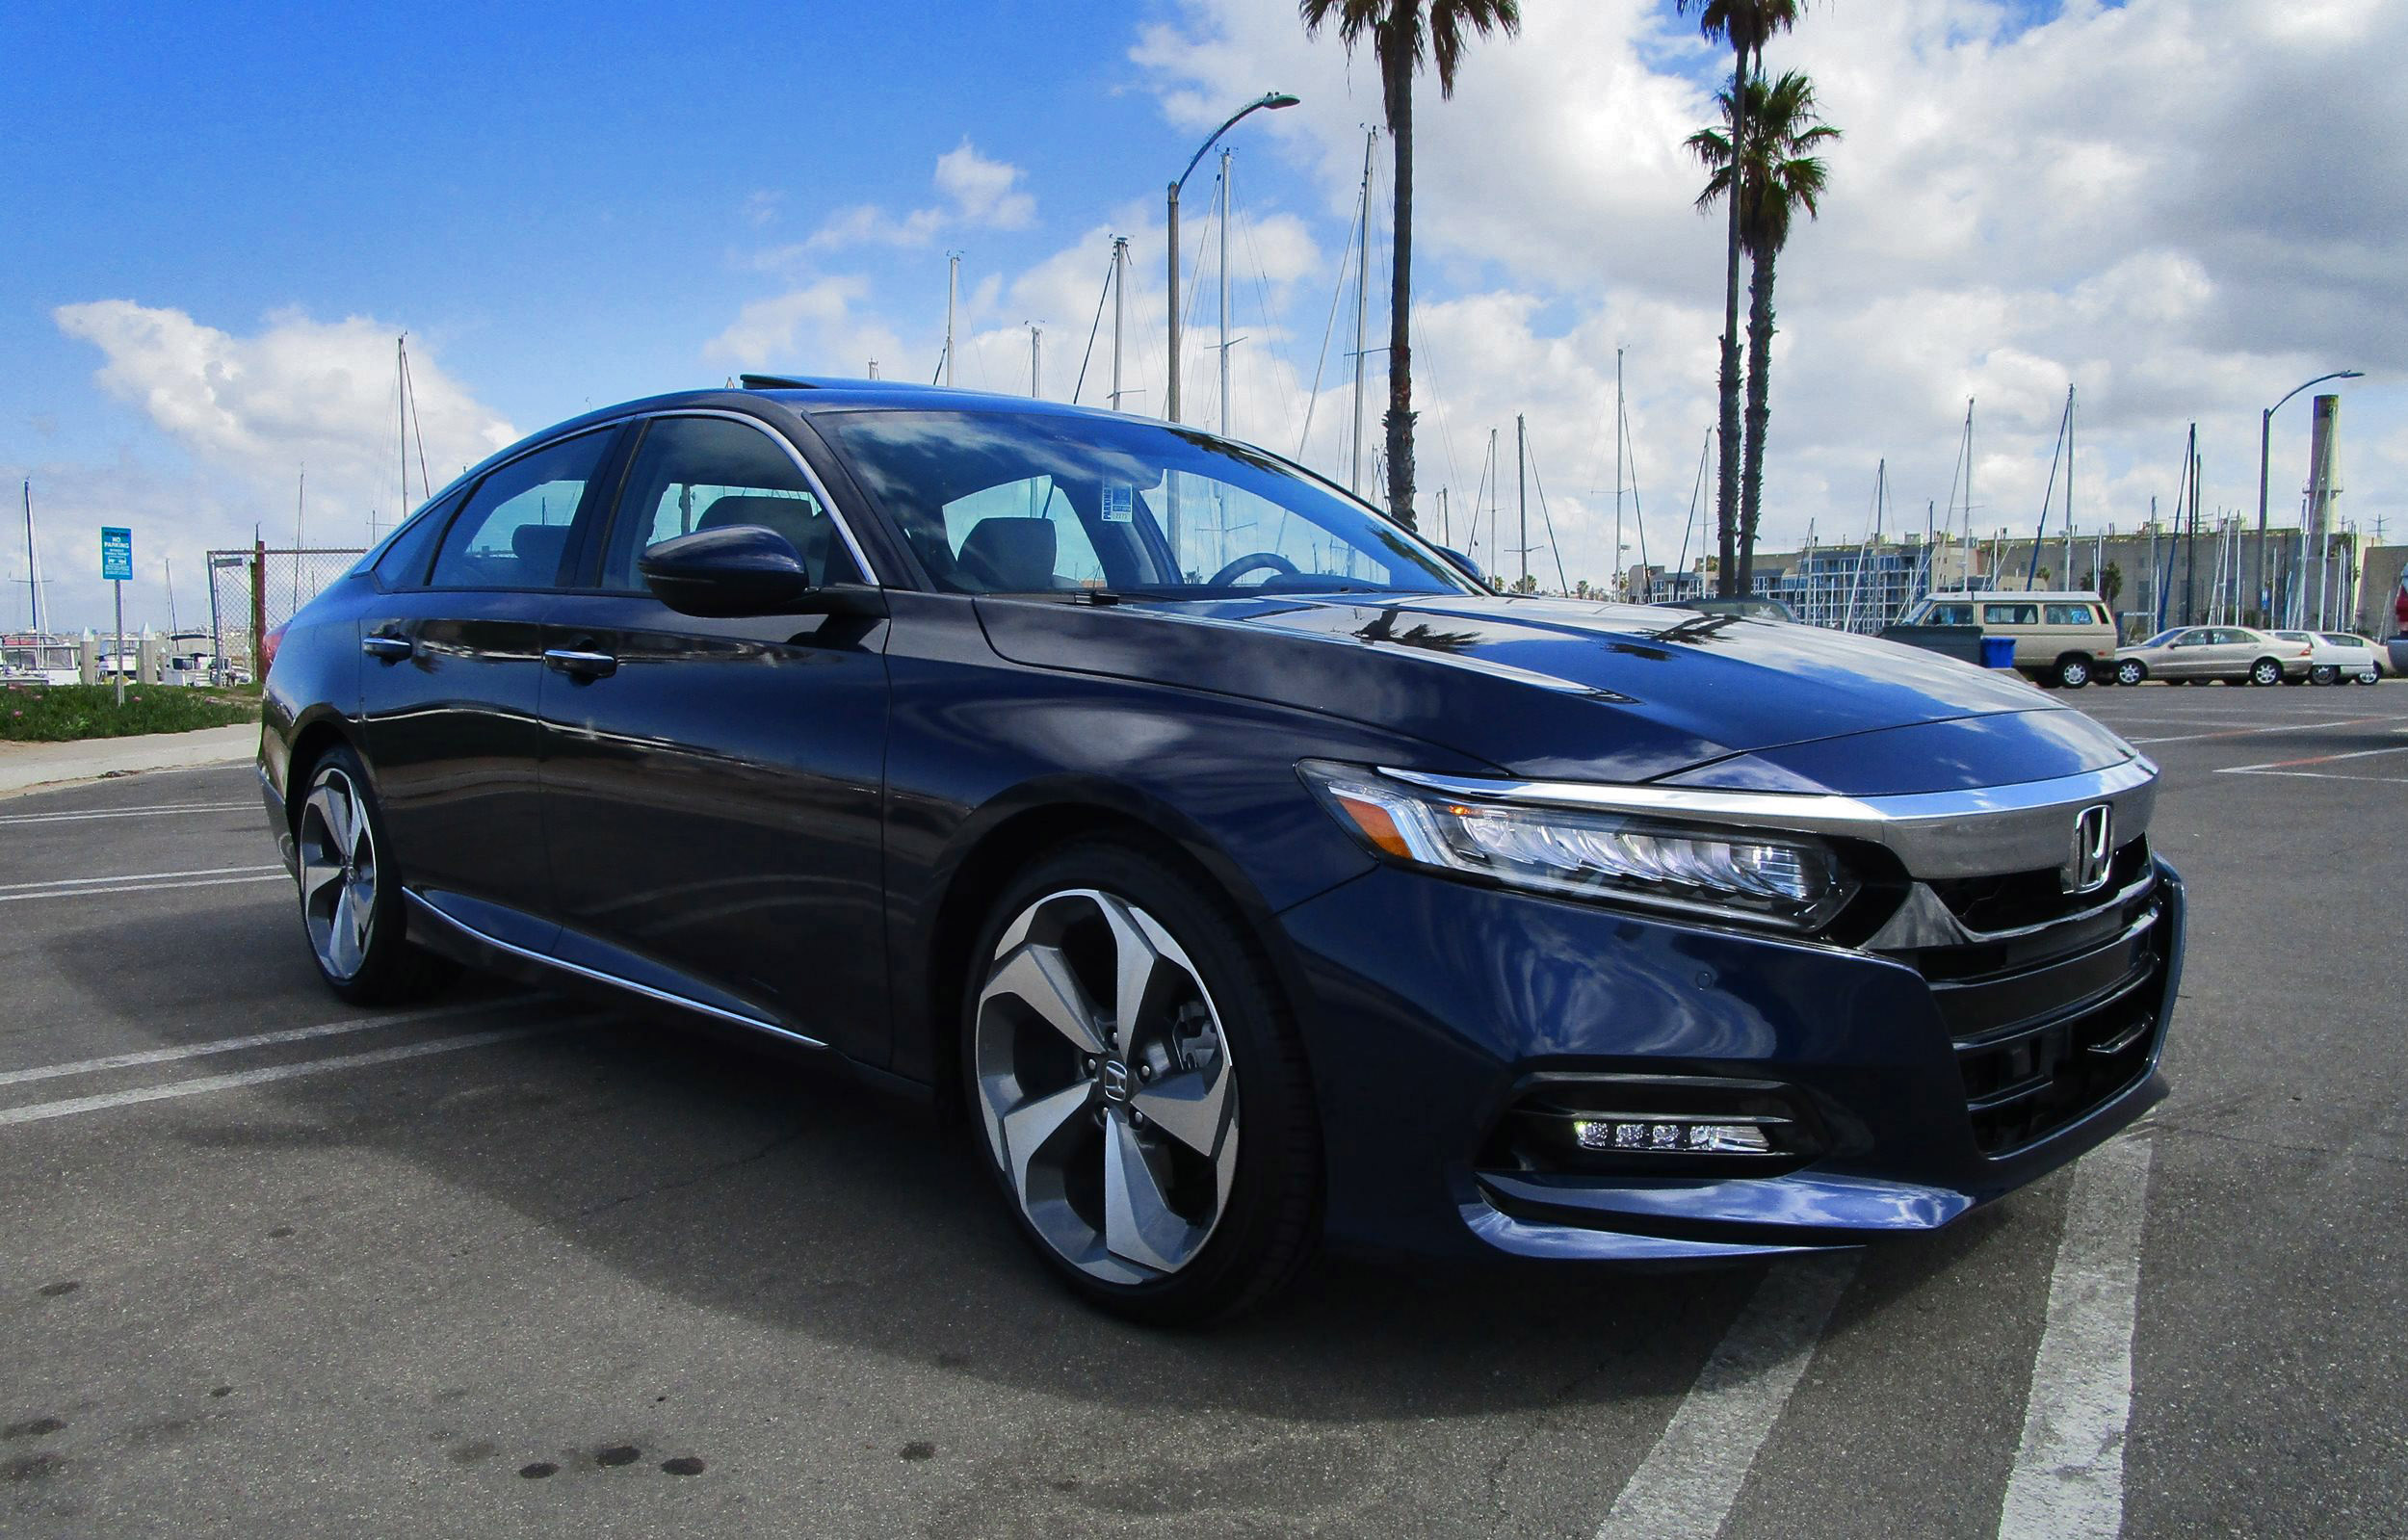 2018 Honda Accord Touring 2.0T - Road Test Review - By Ben ...